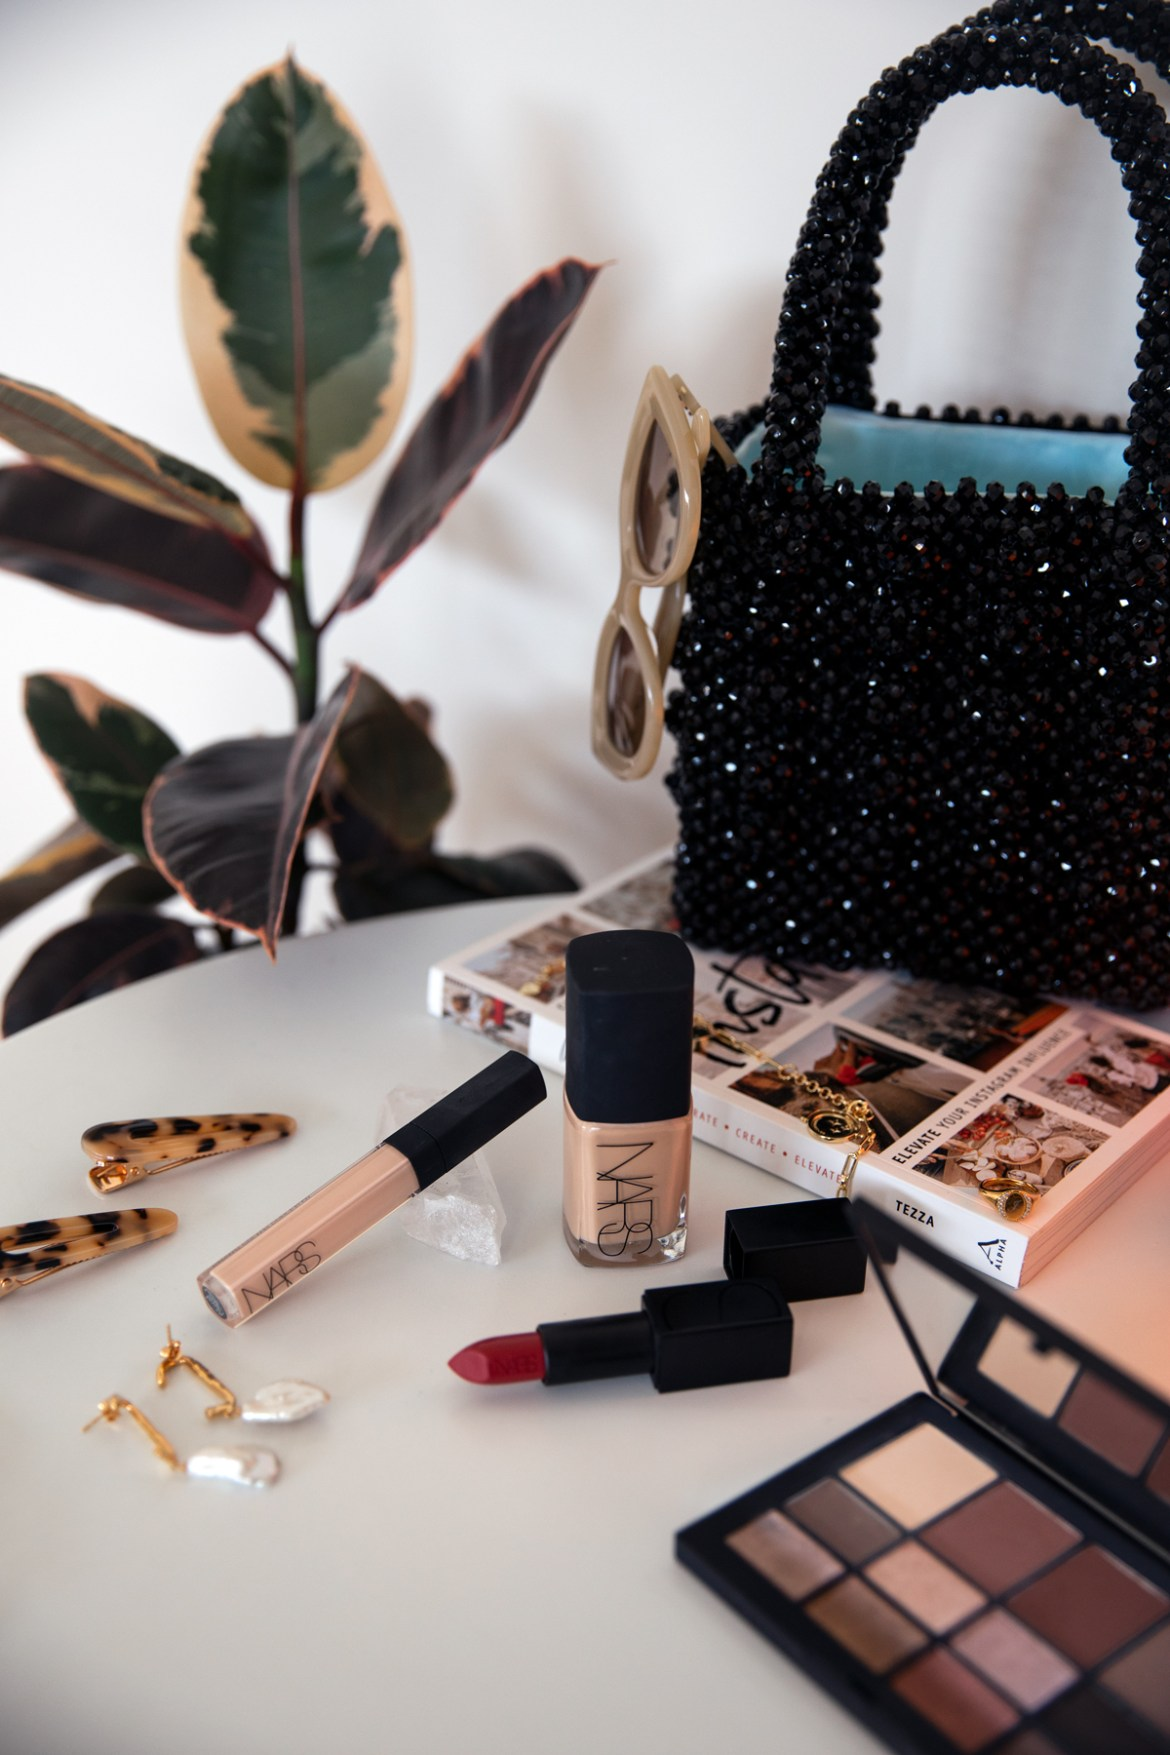 Nars Sheer Glow foundation, lipstick, eye shadow palette and concealer from Mecca by Inspiring Wit with beaded Shrimps bag and Valet hair clips